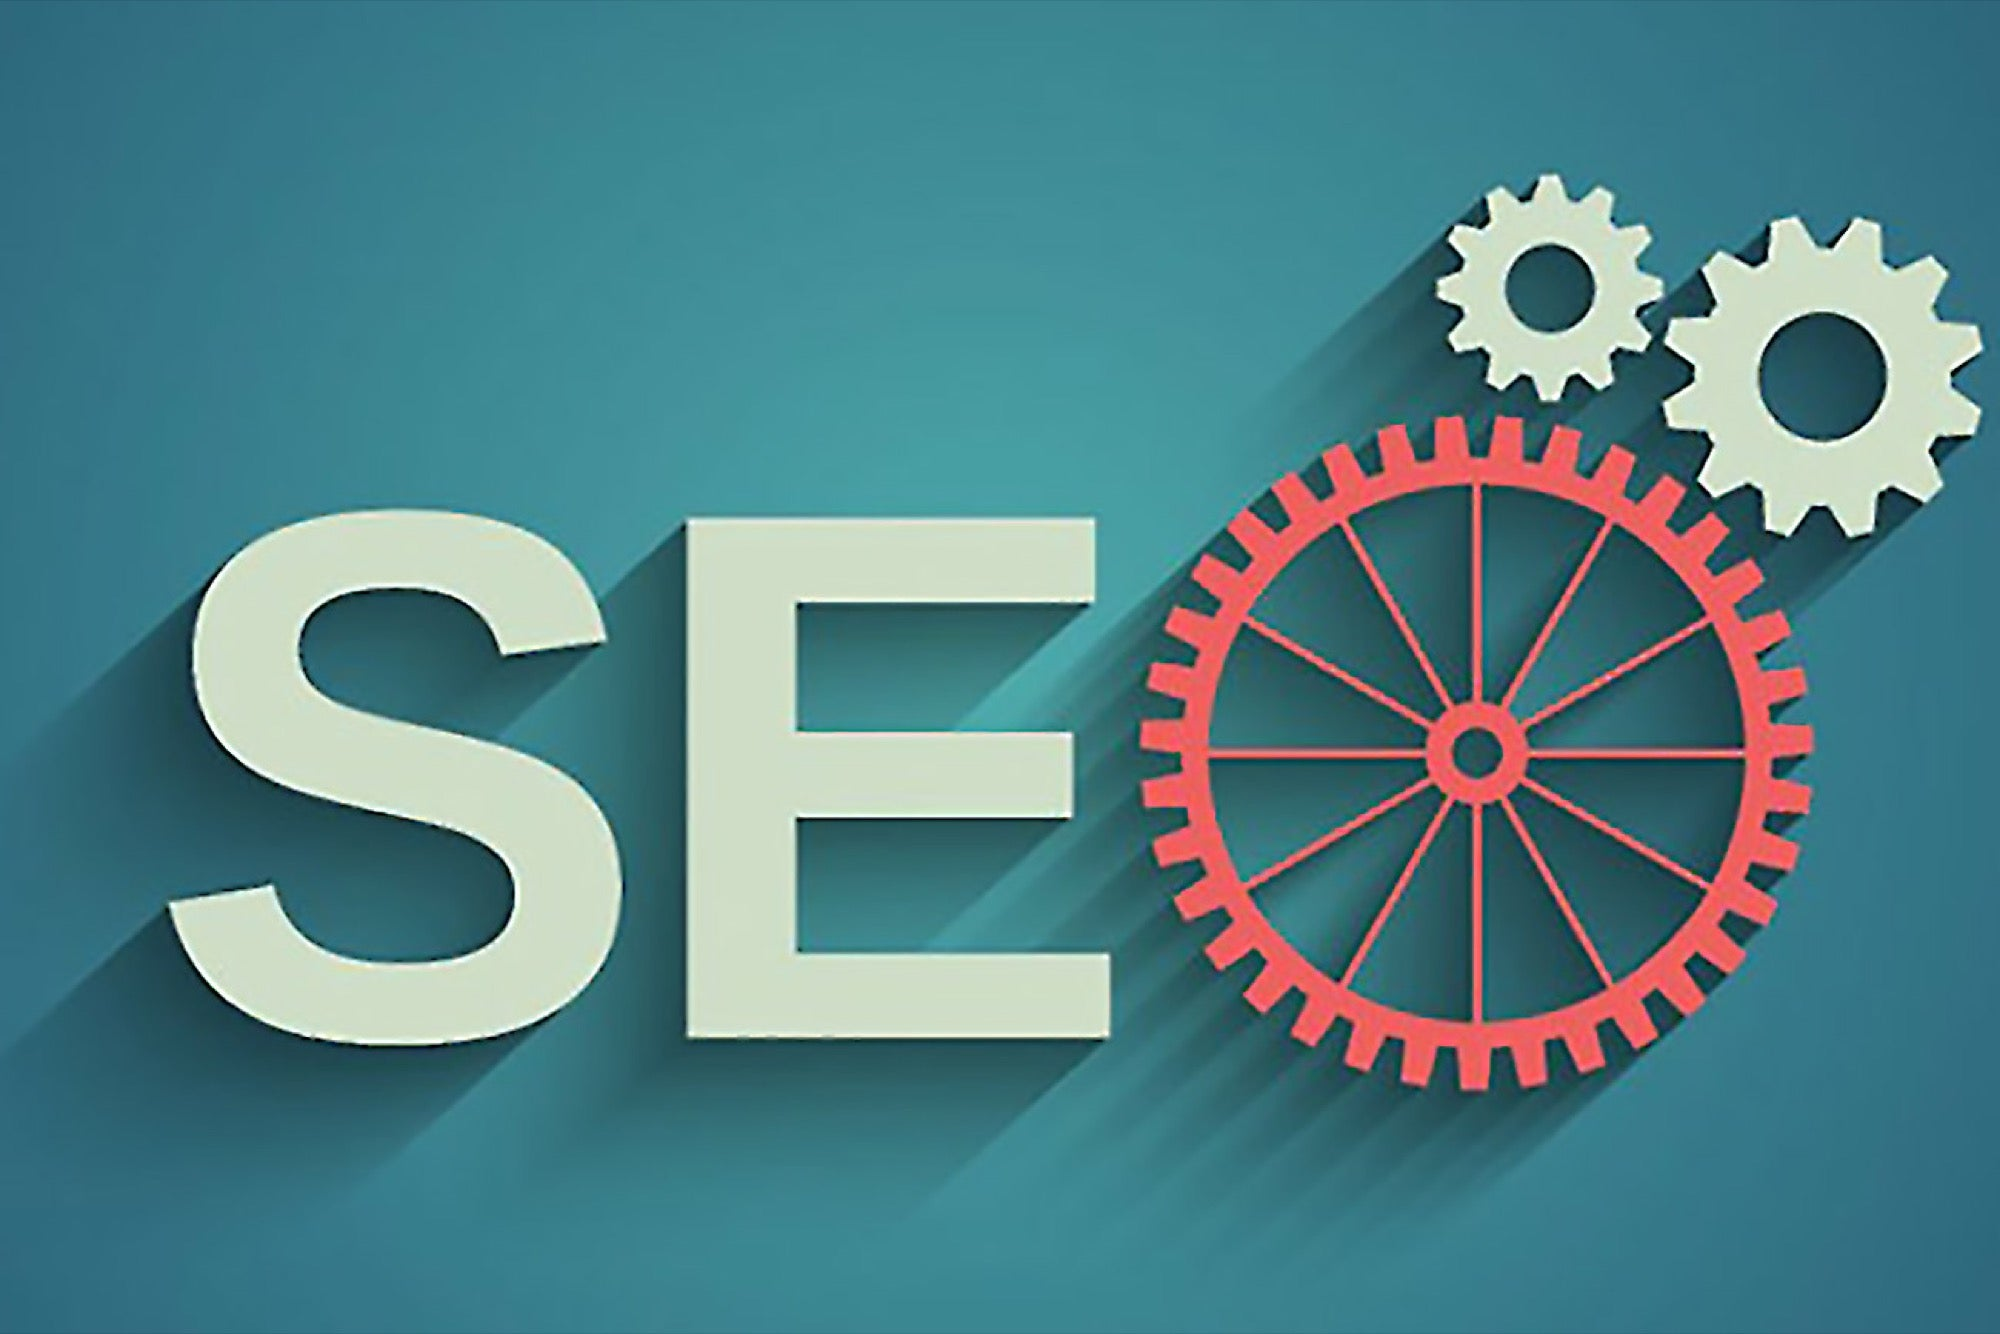 Which Of the Top Three Businesses Should Hire An SEO Agency?